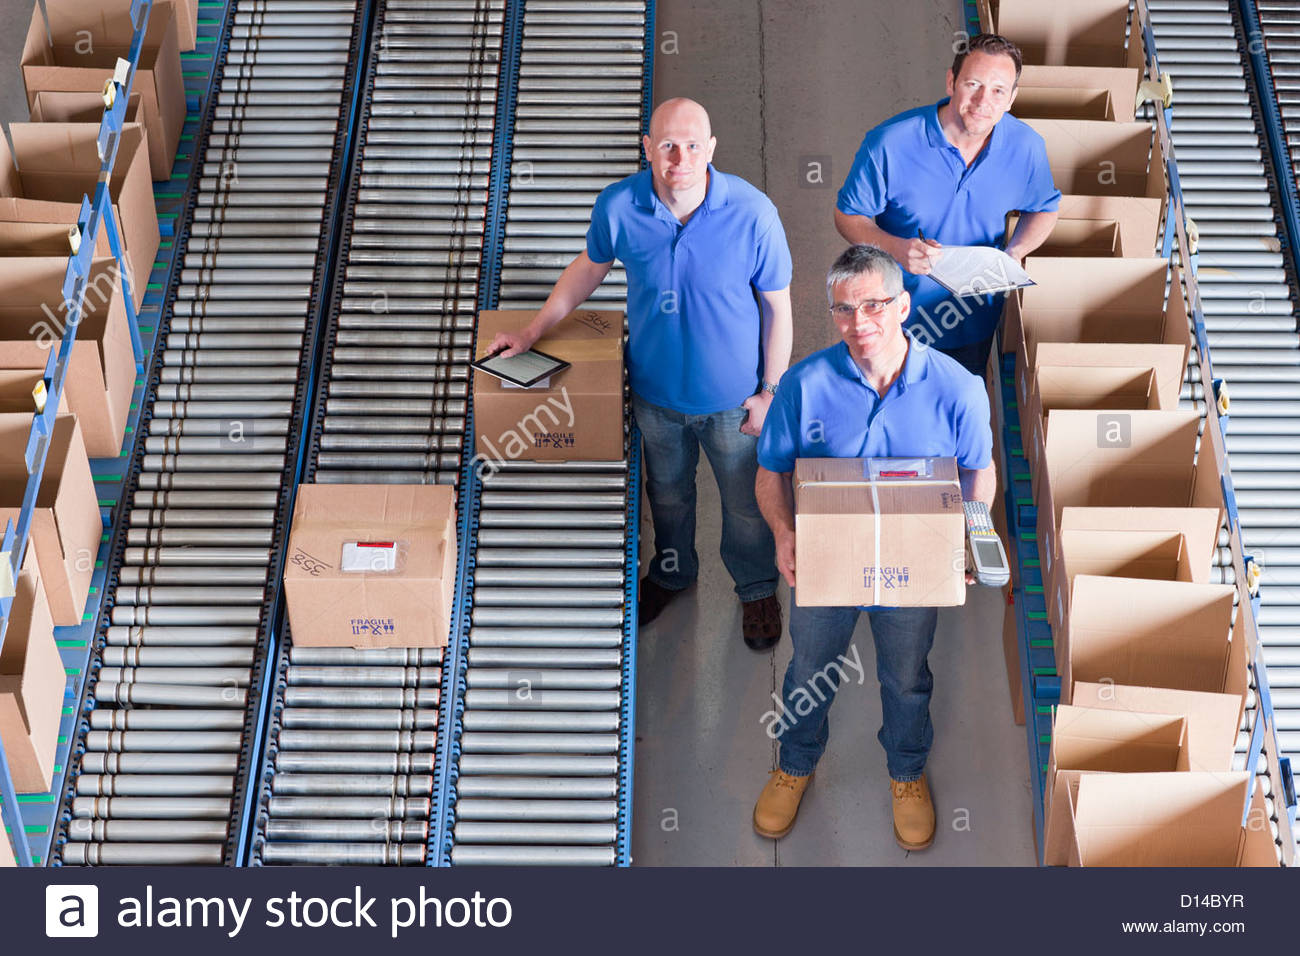 Portrait of smiling workers packing boxes on conveyor belts in distribution warehouse - Stock Image